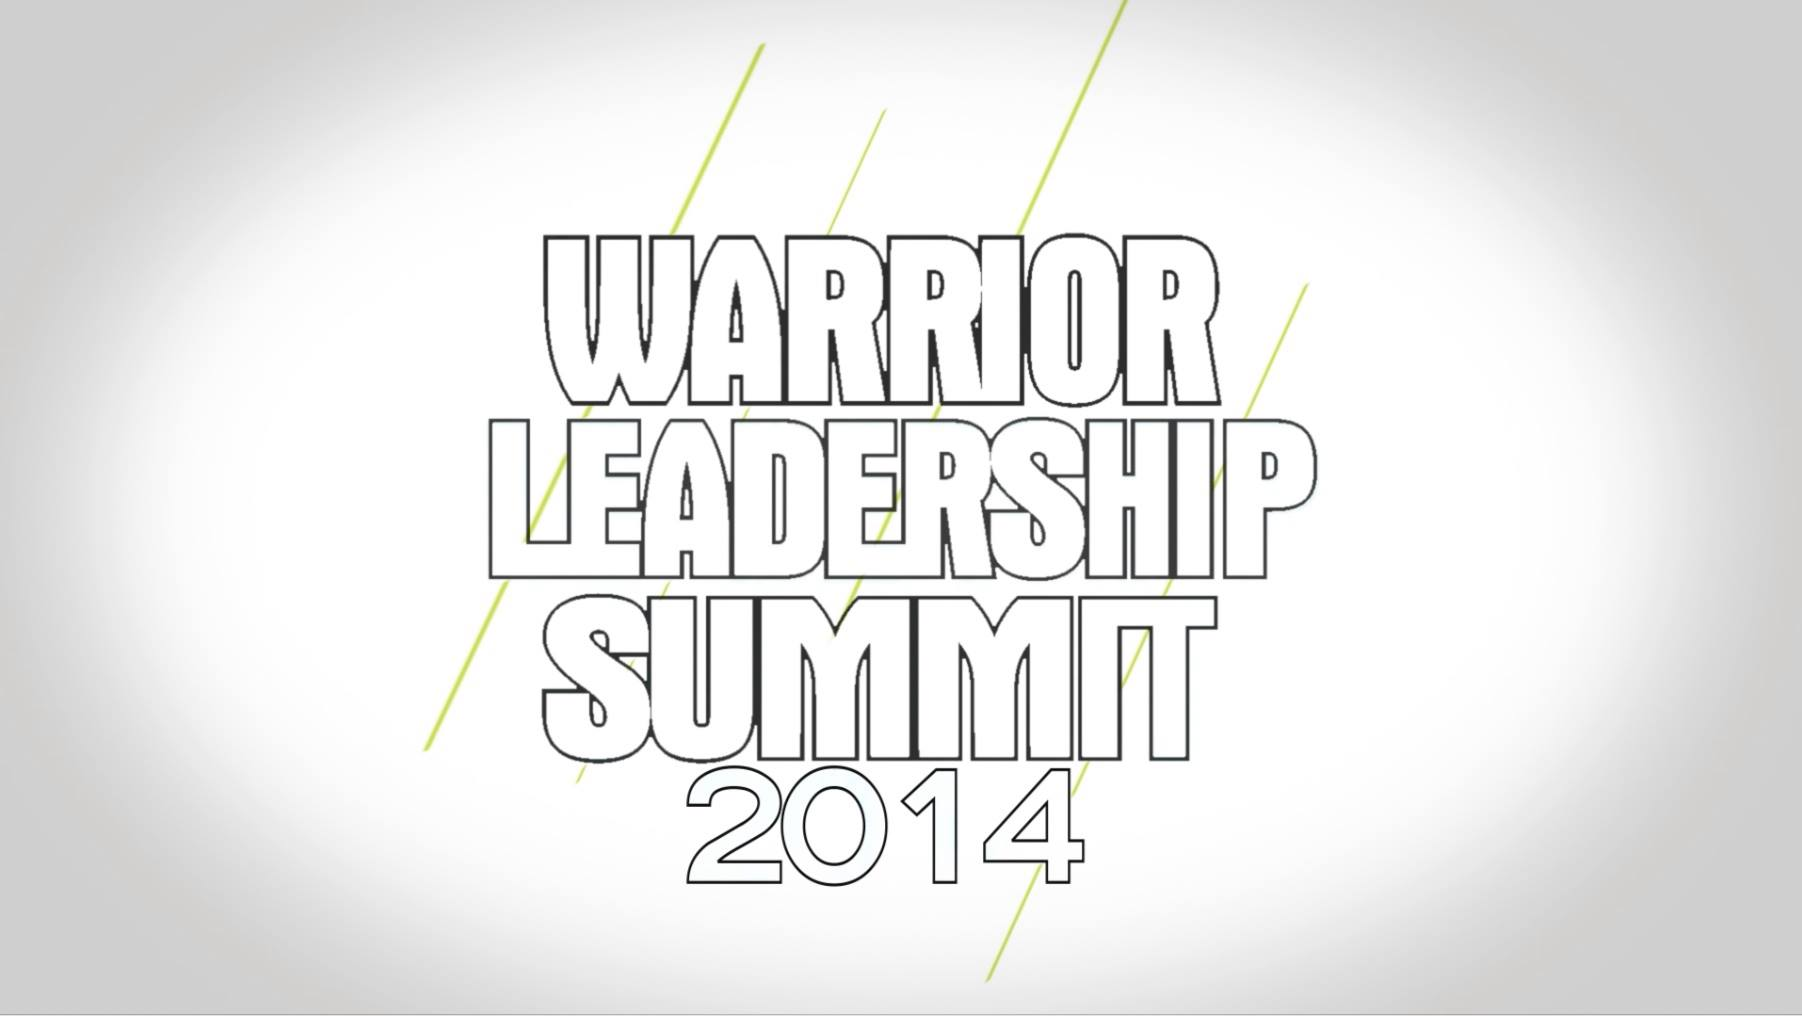 Gearing up for WLS 2014